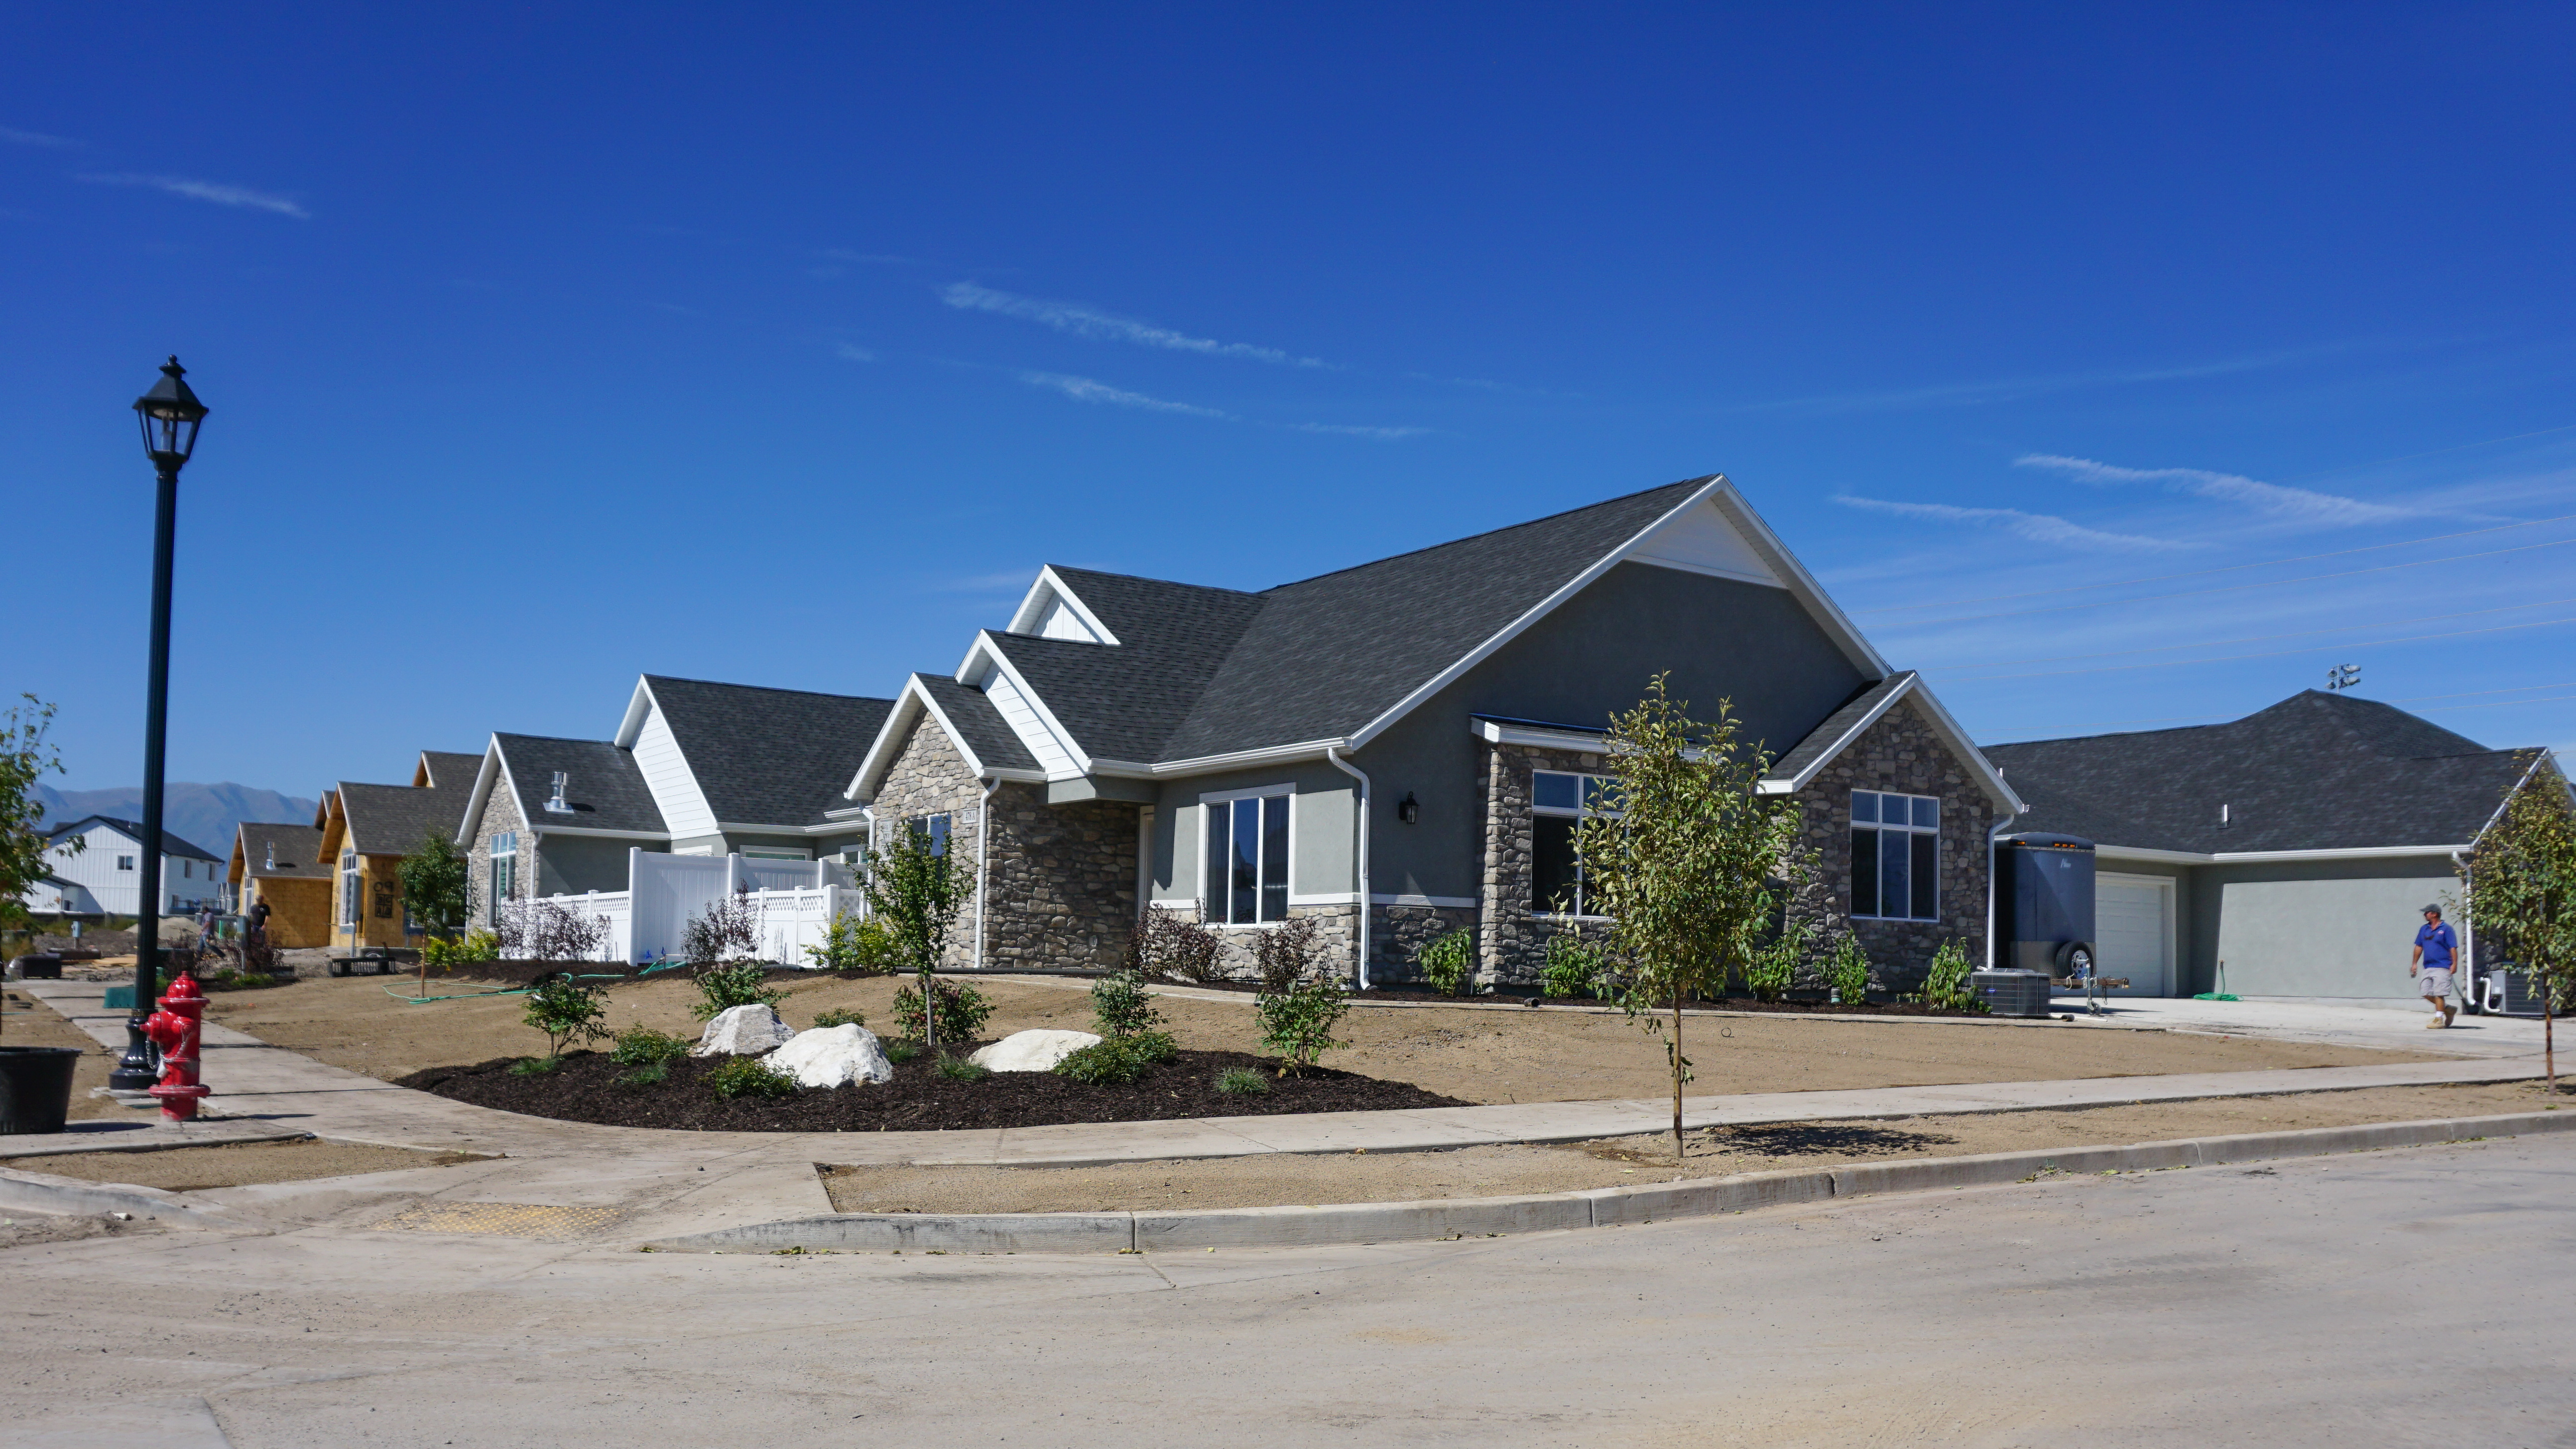 The Villas At Legacy Farms 55 Plus Community Homes For Sale In Saratoga Springs